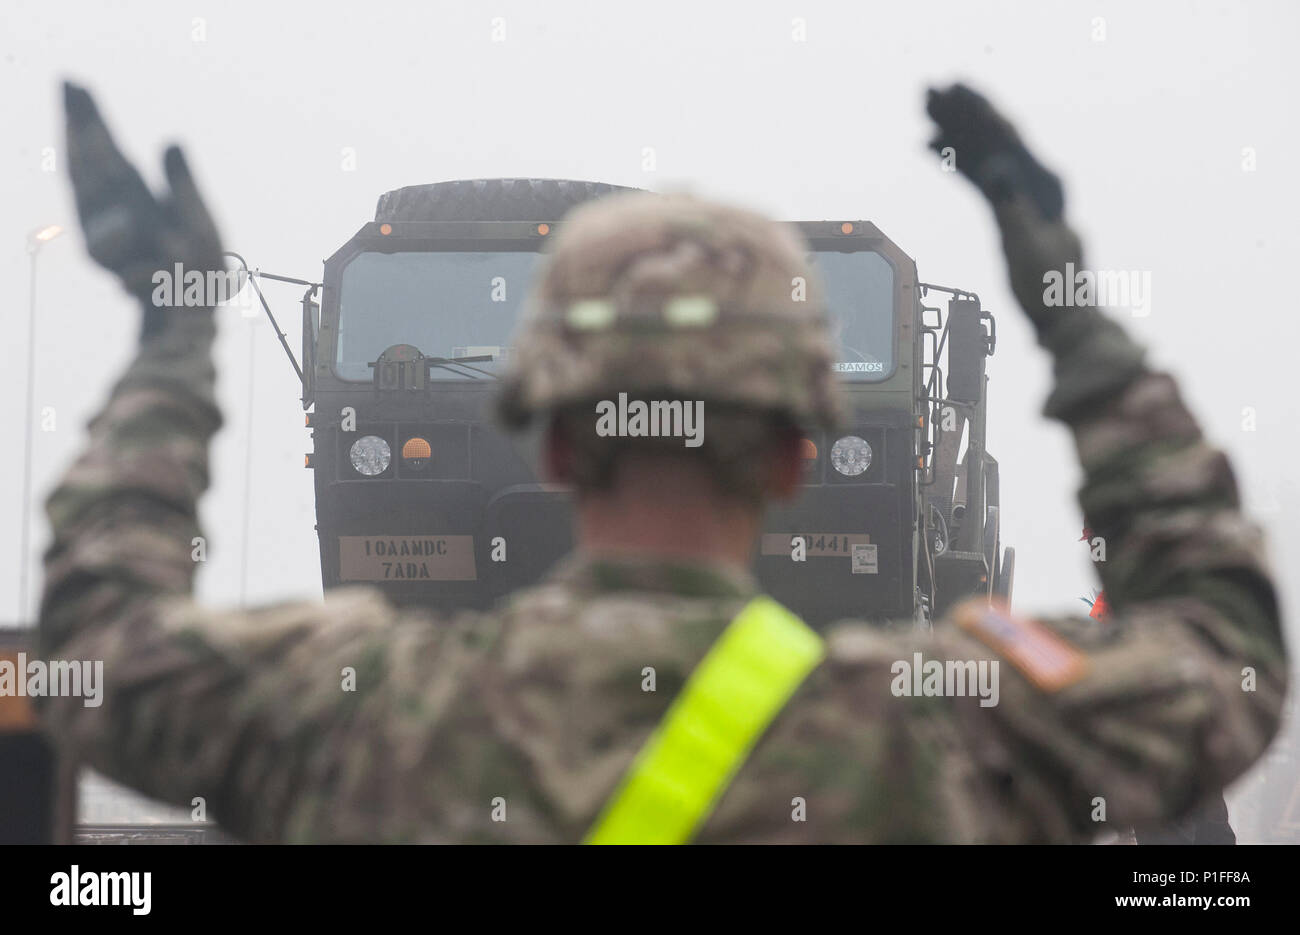 """U.S. Army Sergeant Joseph Harris, with the 5th Battalion, 7th Air Defense Artillery Regiment, directs the loading of a military support vehicle onto a railroad flatbed trailer at Rhine Ordnance Barracks in Kaiserslautern, Germany on Oct. 27, 2016. The military transport is in preparation for the 10th Army Air Missile Defense Command's """"Patriot Shock"""" exercise set to happen in Romania over the next several weeks. (DoD News photo by Tech. Sgt. Brian Kimball) - Stock Image"""